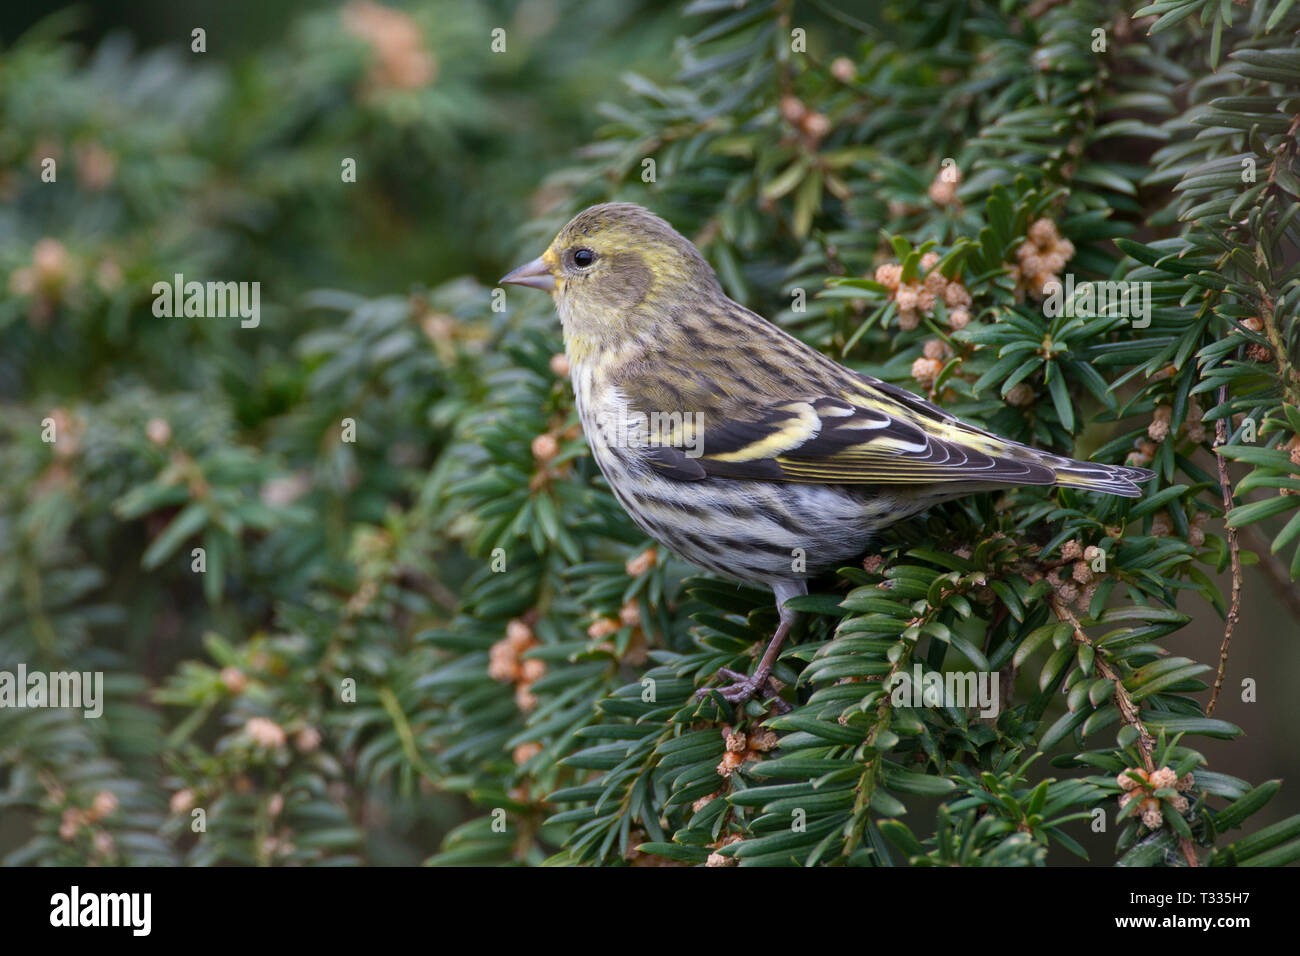 Siskin, Carduelis spinus, single adult female perched on conifer tree. Taken March. Arundel, West Sussex, UK. - Stock Image